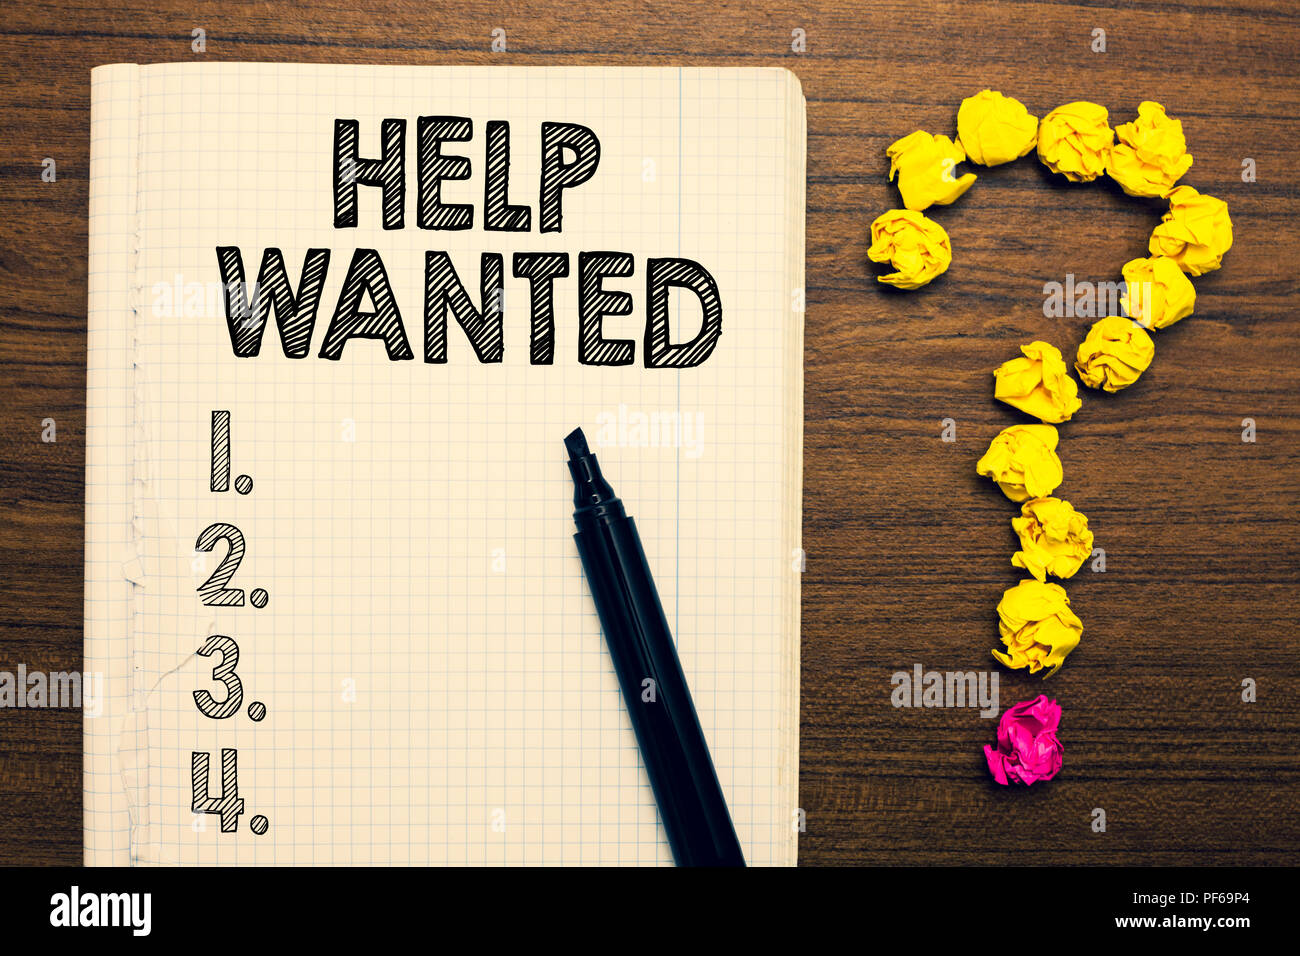 Word writing text Help Wanted. Business concept for advertisement placed in newspaper by employers seek employees Notebook marker crumpled papers form - Stock Image